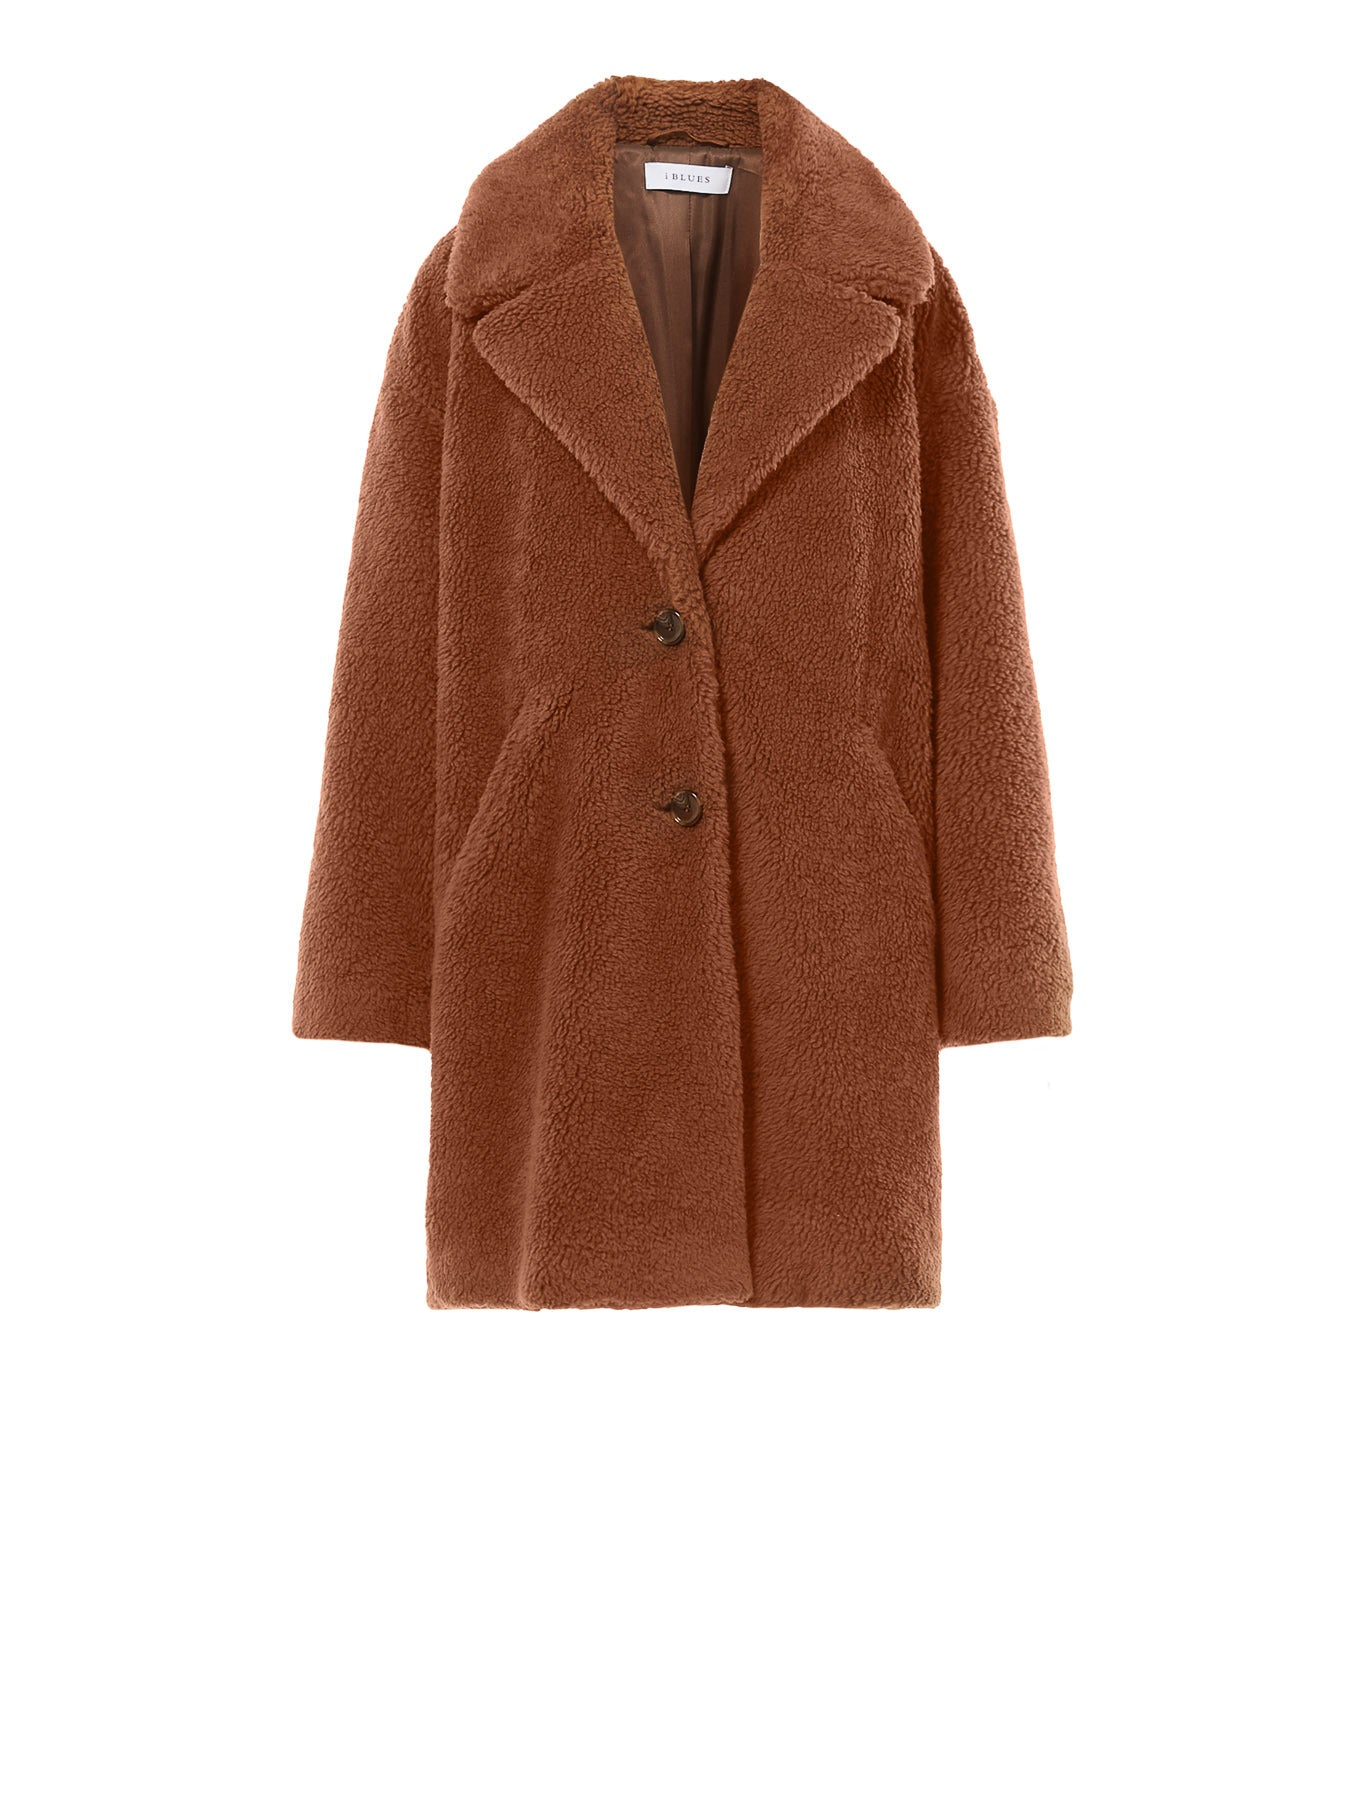 Veranda Plush-Effect Coat in Cognac